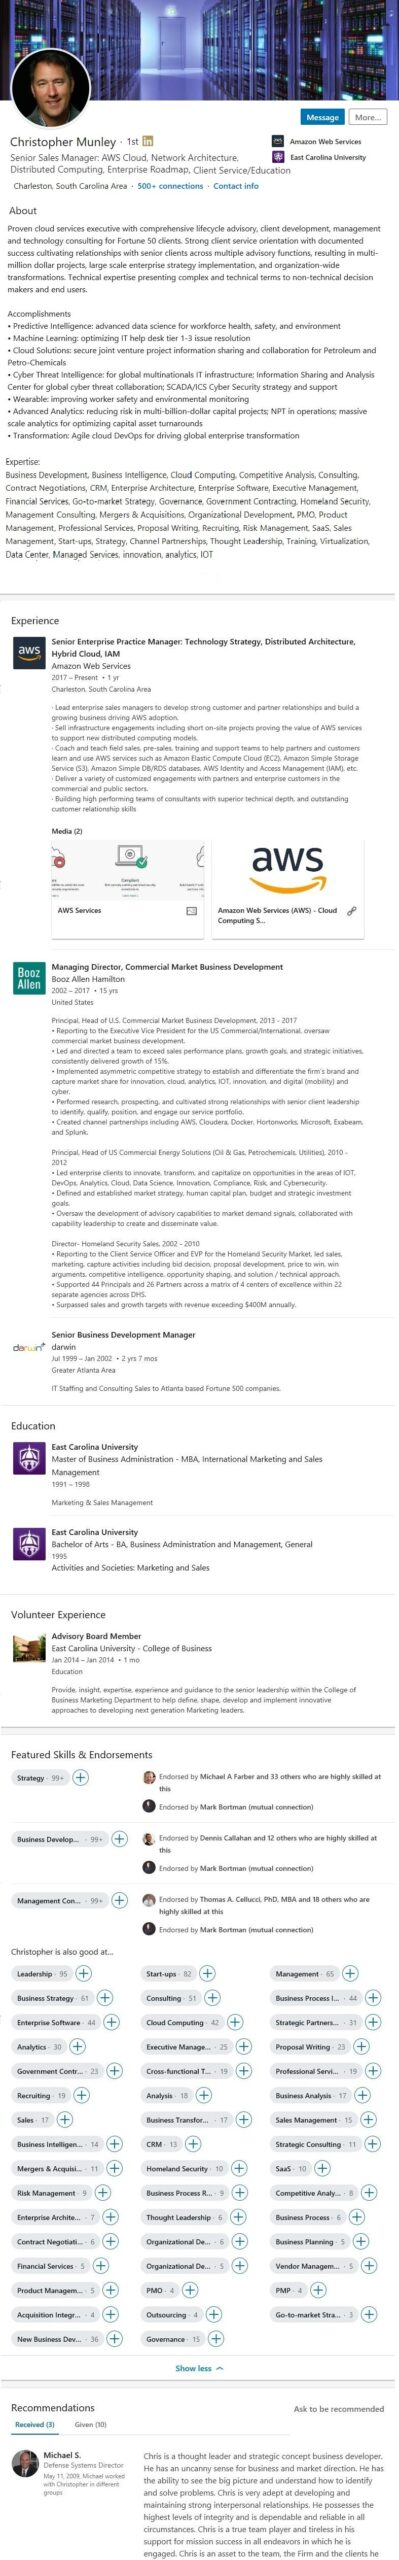 linkedin profile resume example cybersecurity computing virtualization cyber security Resume Cyber Security Resume Reddit